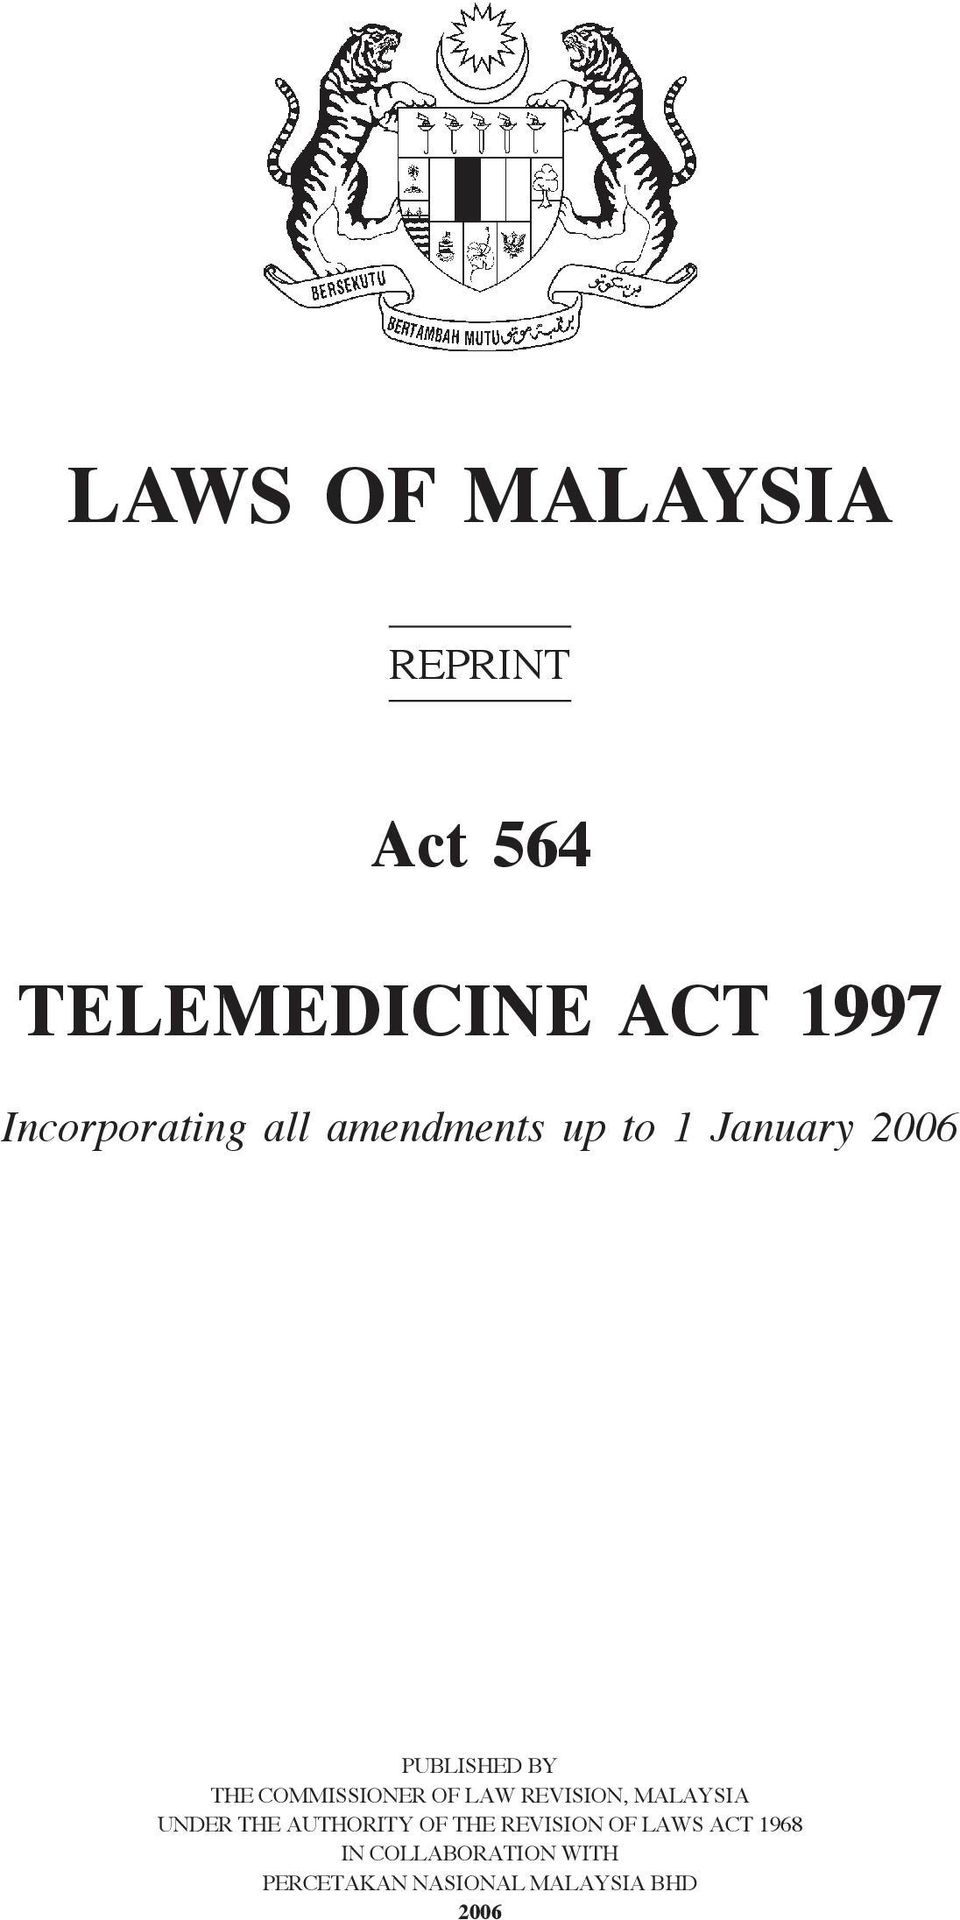 LAW REVISION, MALAYSIA UNDER THE AUTHORITY OF THE REVISION OF LAWS